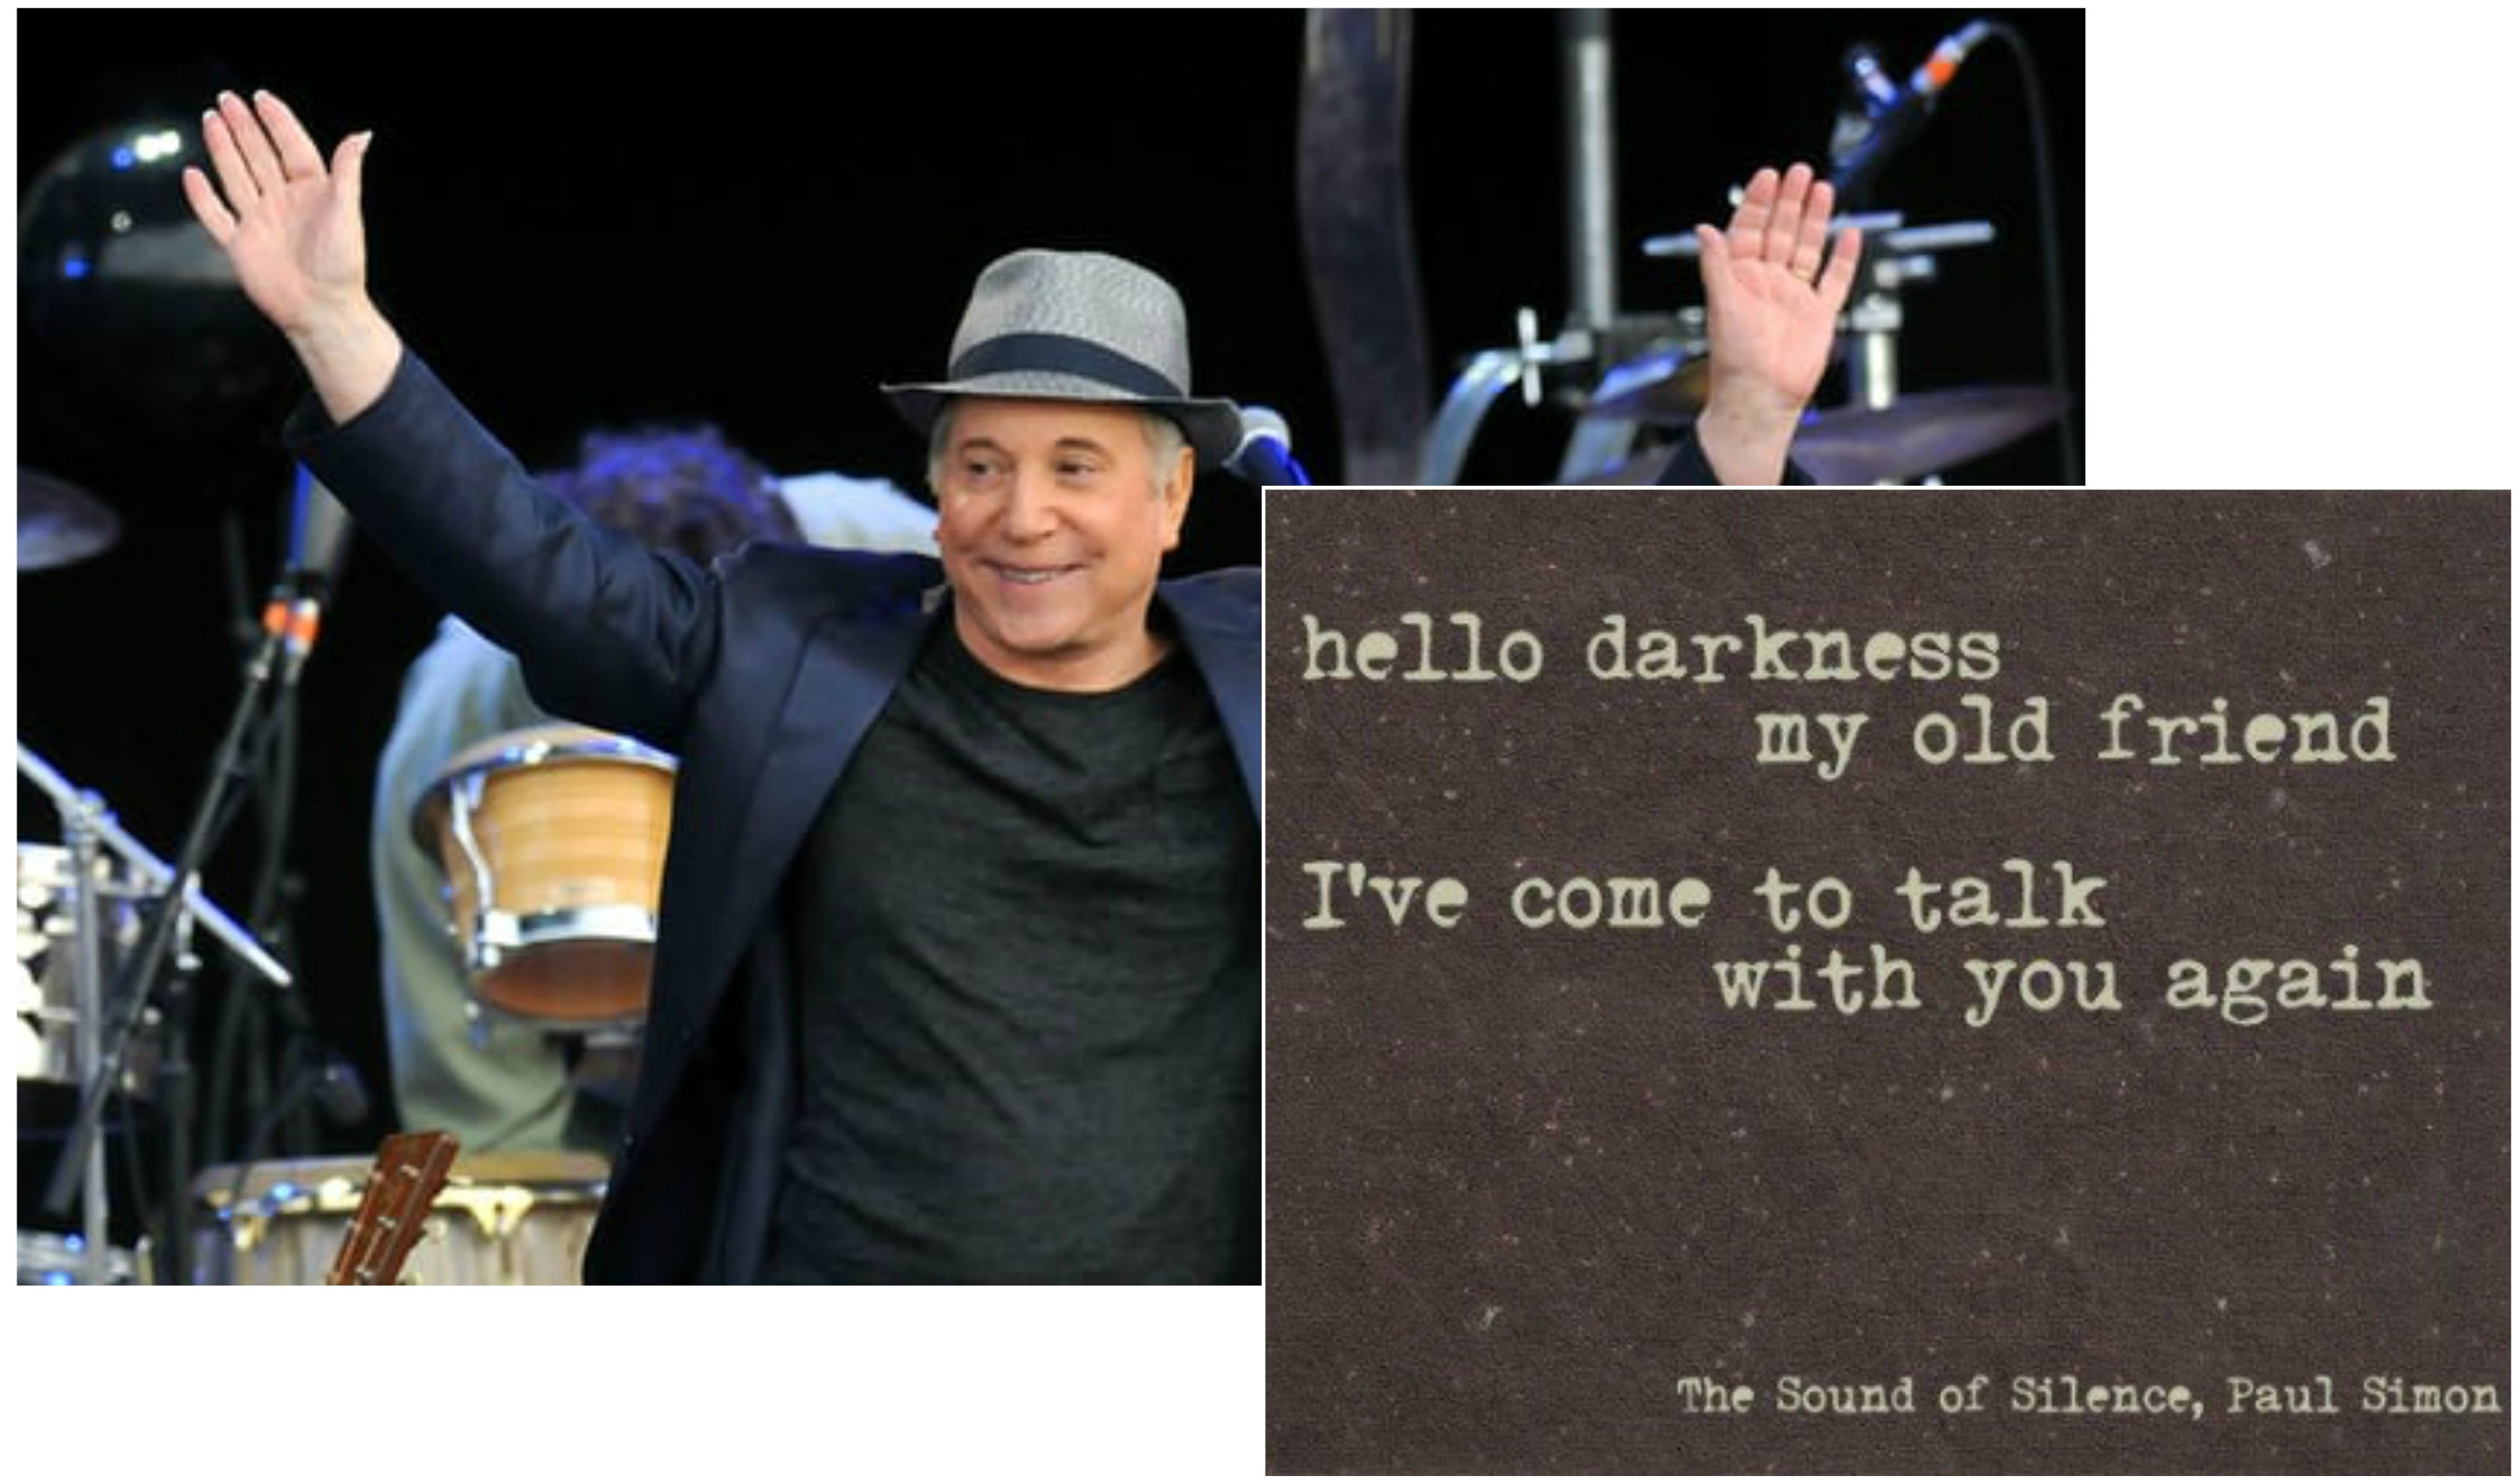 The Sound of Silence: dopo questo tour, Paul Simon si ritira dalla scena live ..